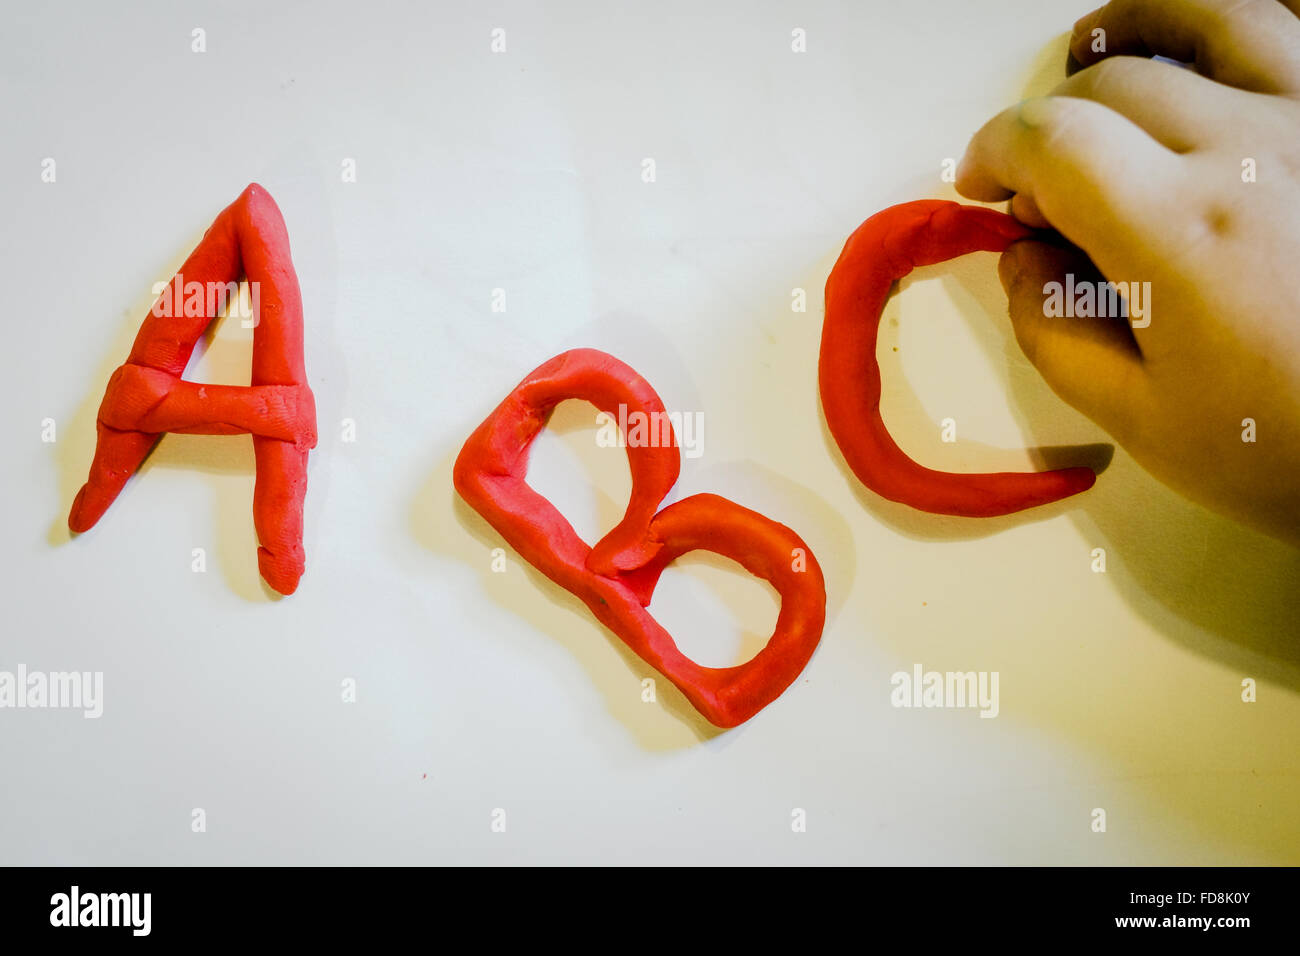 Cropped Hand Making Alphabets With Modelling Clay On White Table - Stock Image